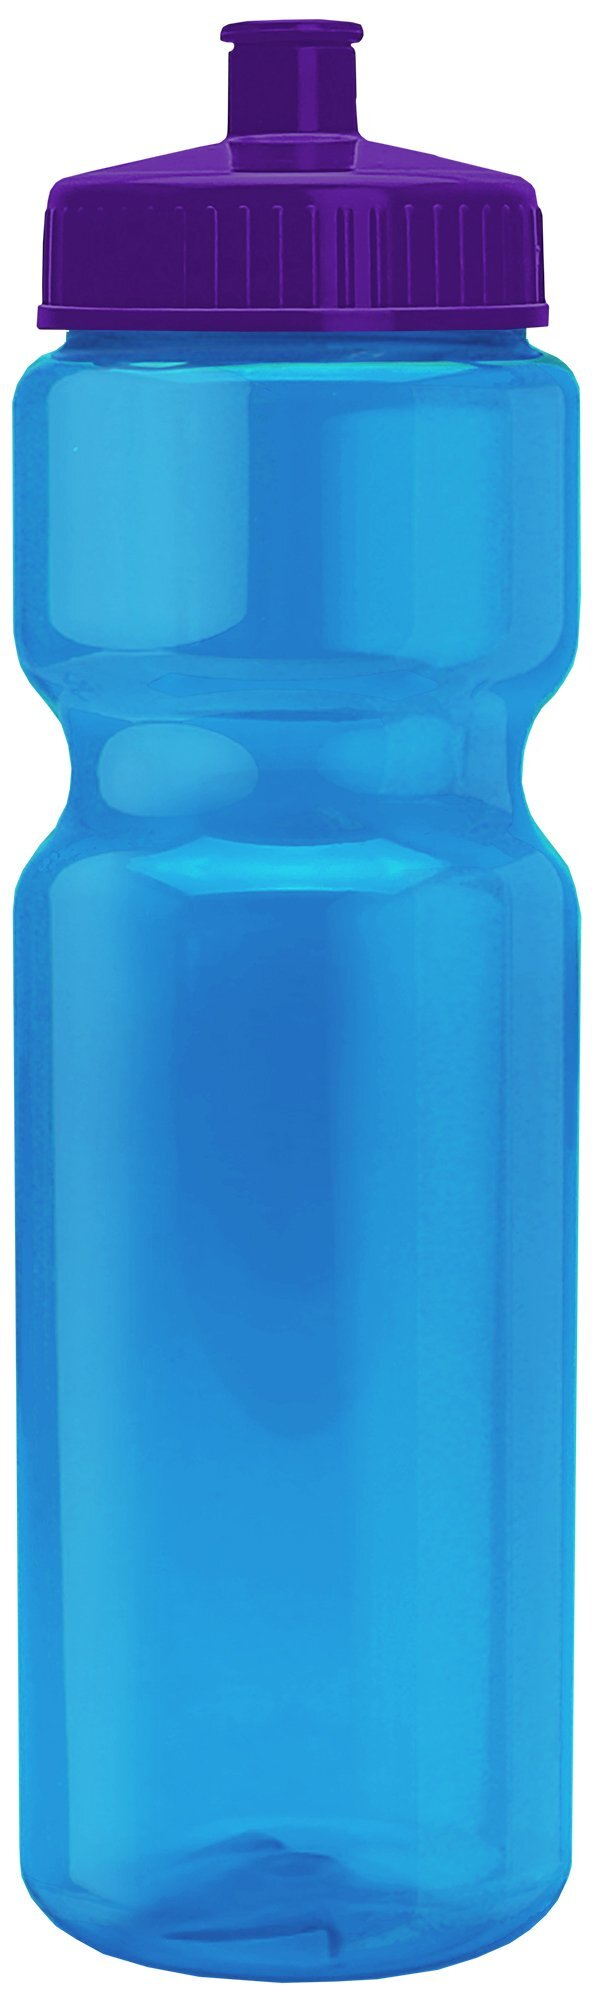 Transparent Sports Bottle, 28oz. - Push/Pull Lid